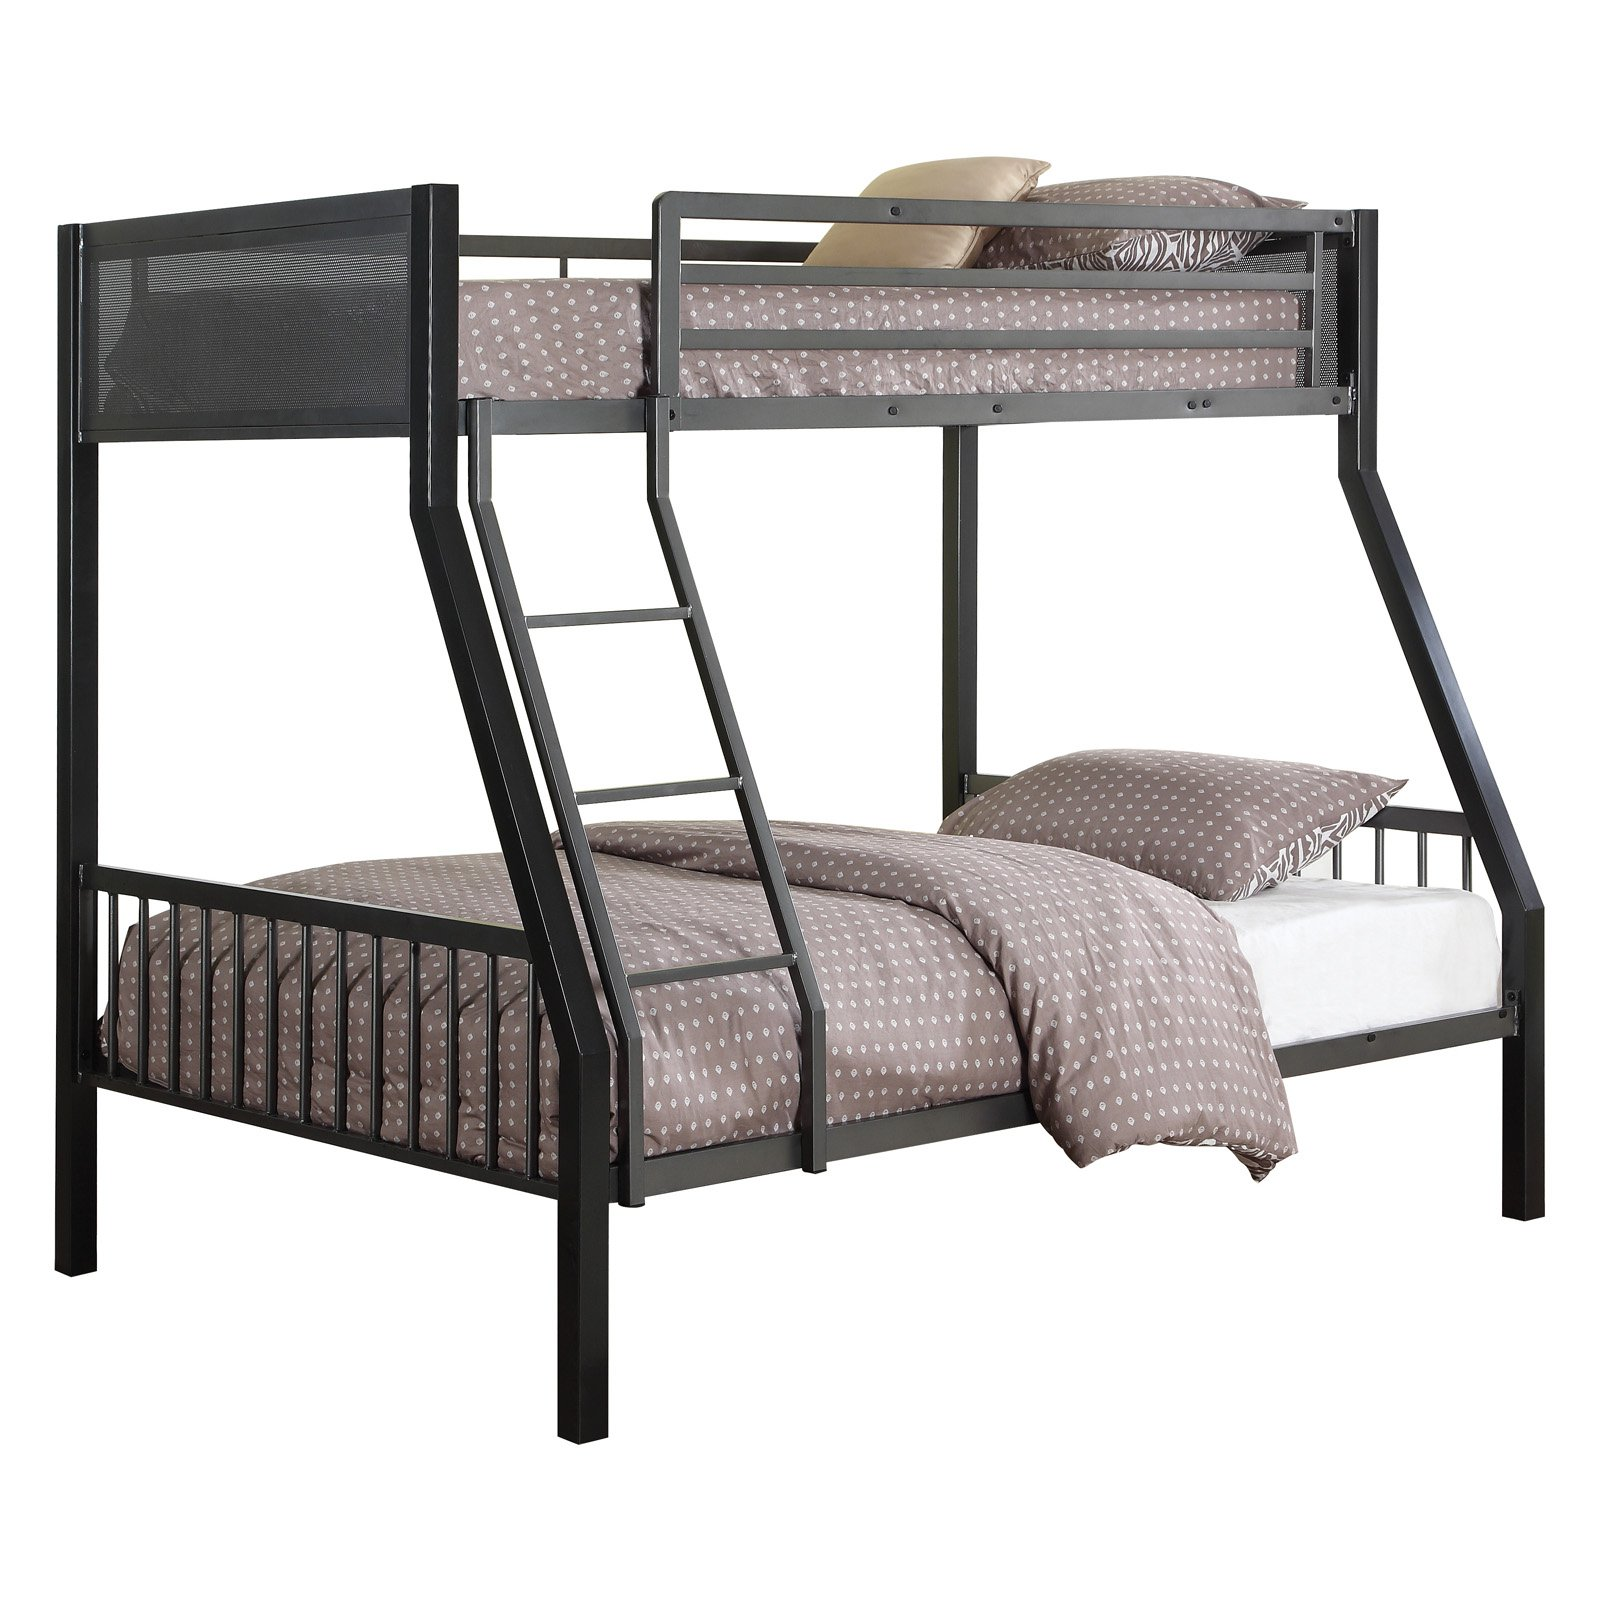 Coaster Meyers Bunk Bed, finished in two tones black/gunmetal